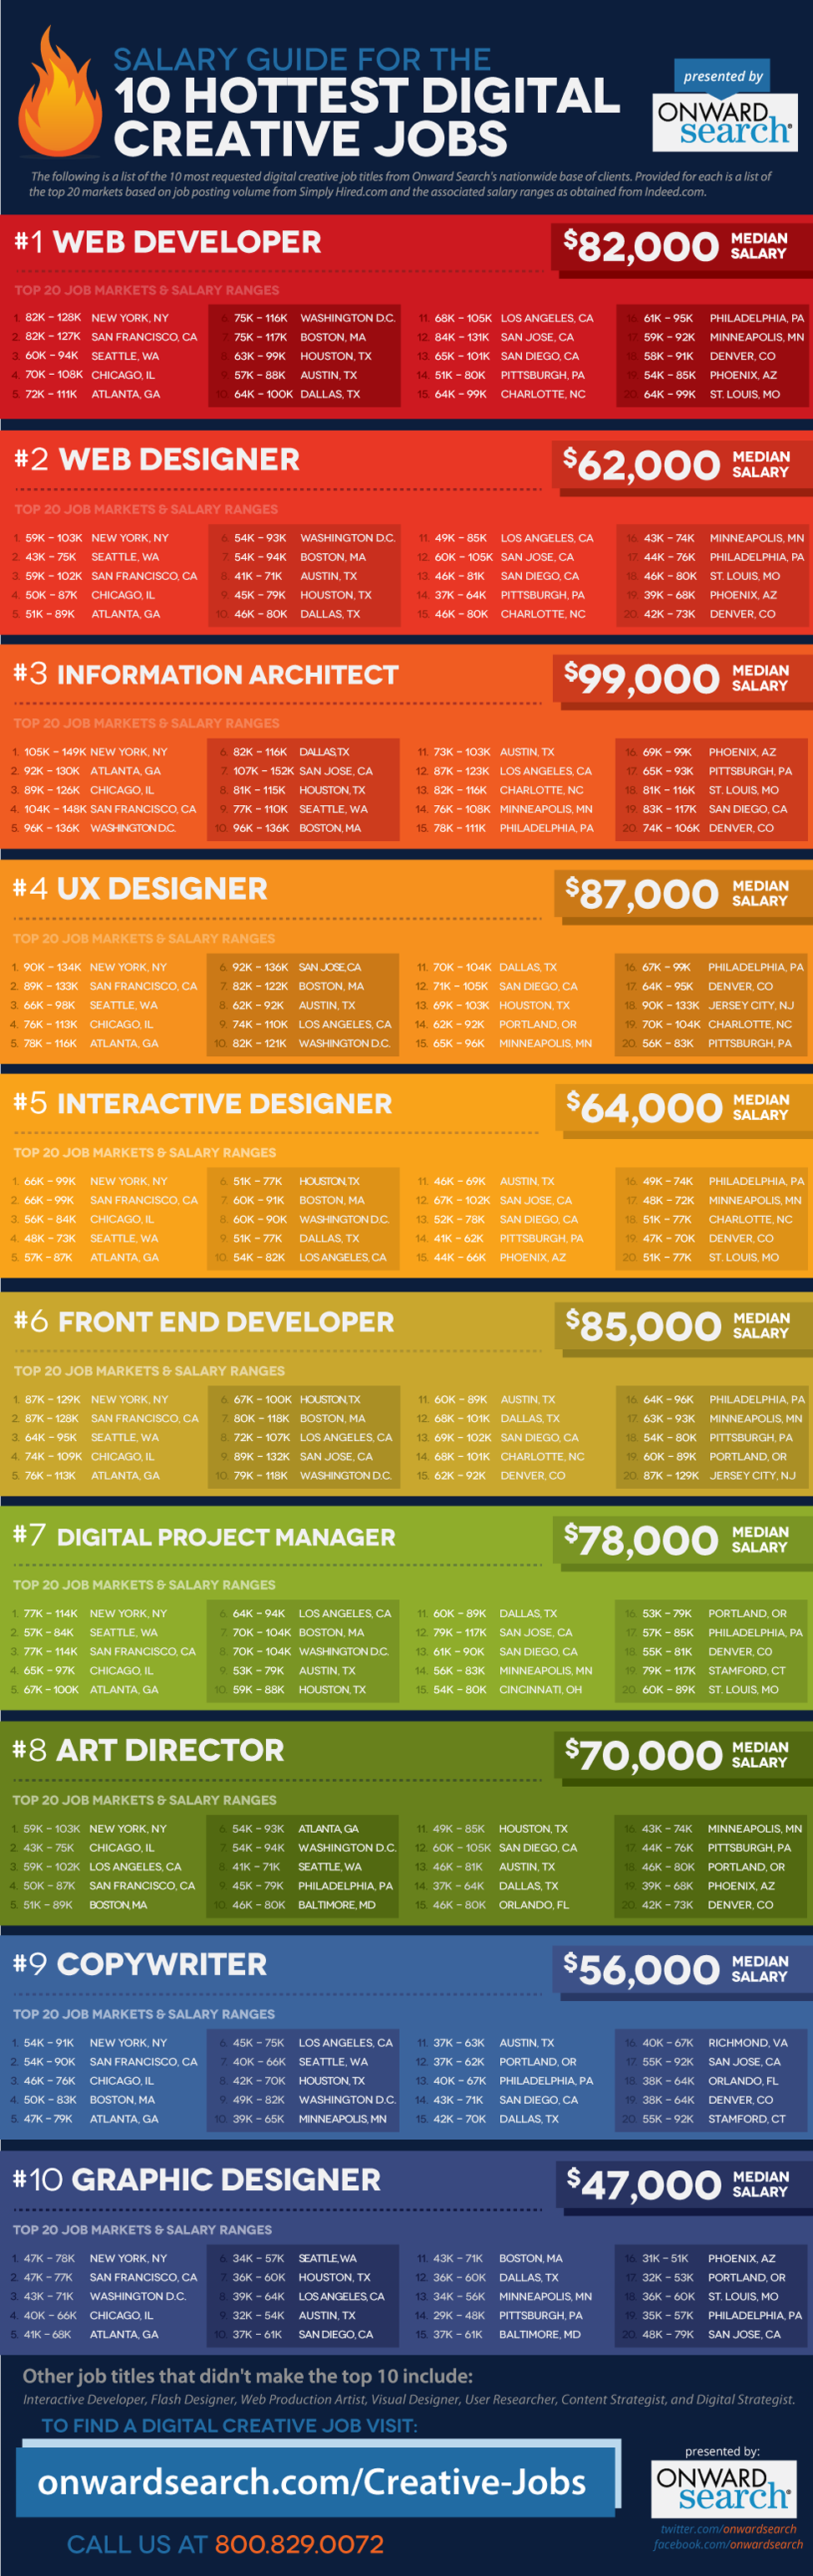 How Much Money Can You Make Working in Digital? [CHART